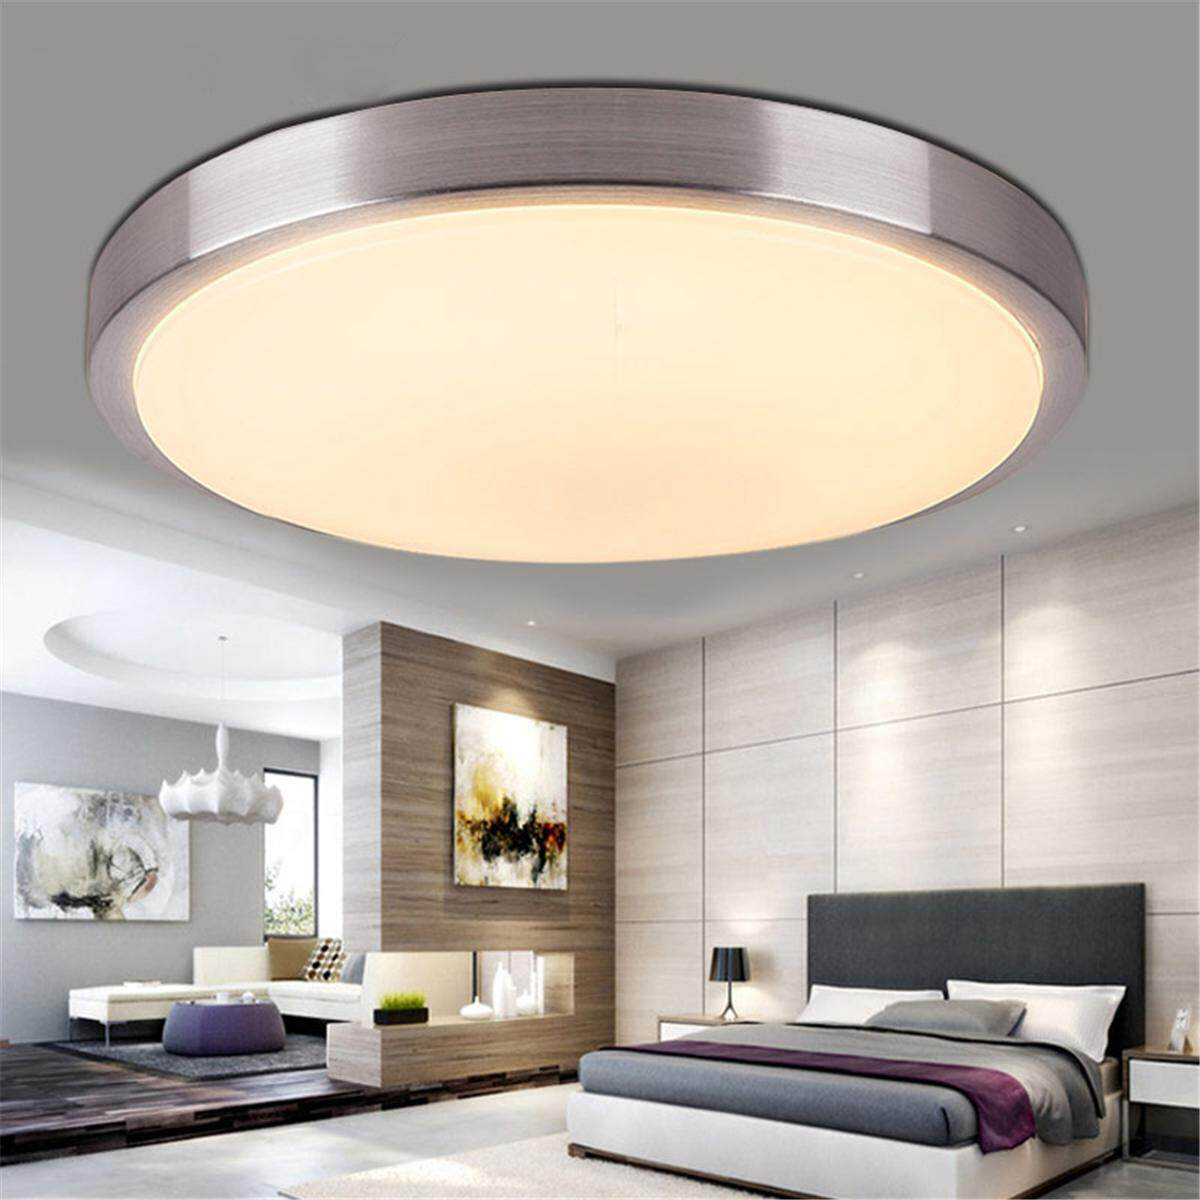 5/15/36w LED Modern Ceiling Light Bedroom Living Room Surface Mount Lamp Decor#Warm 35cm - intl